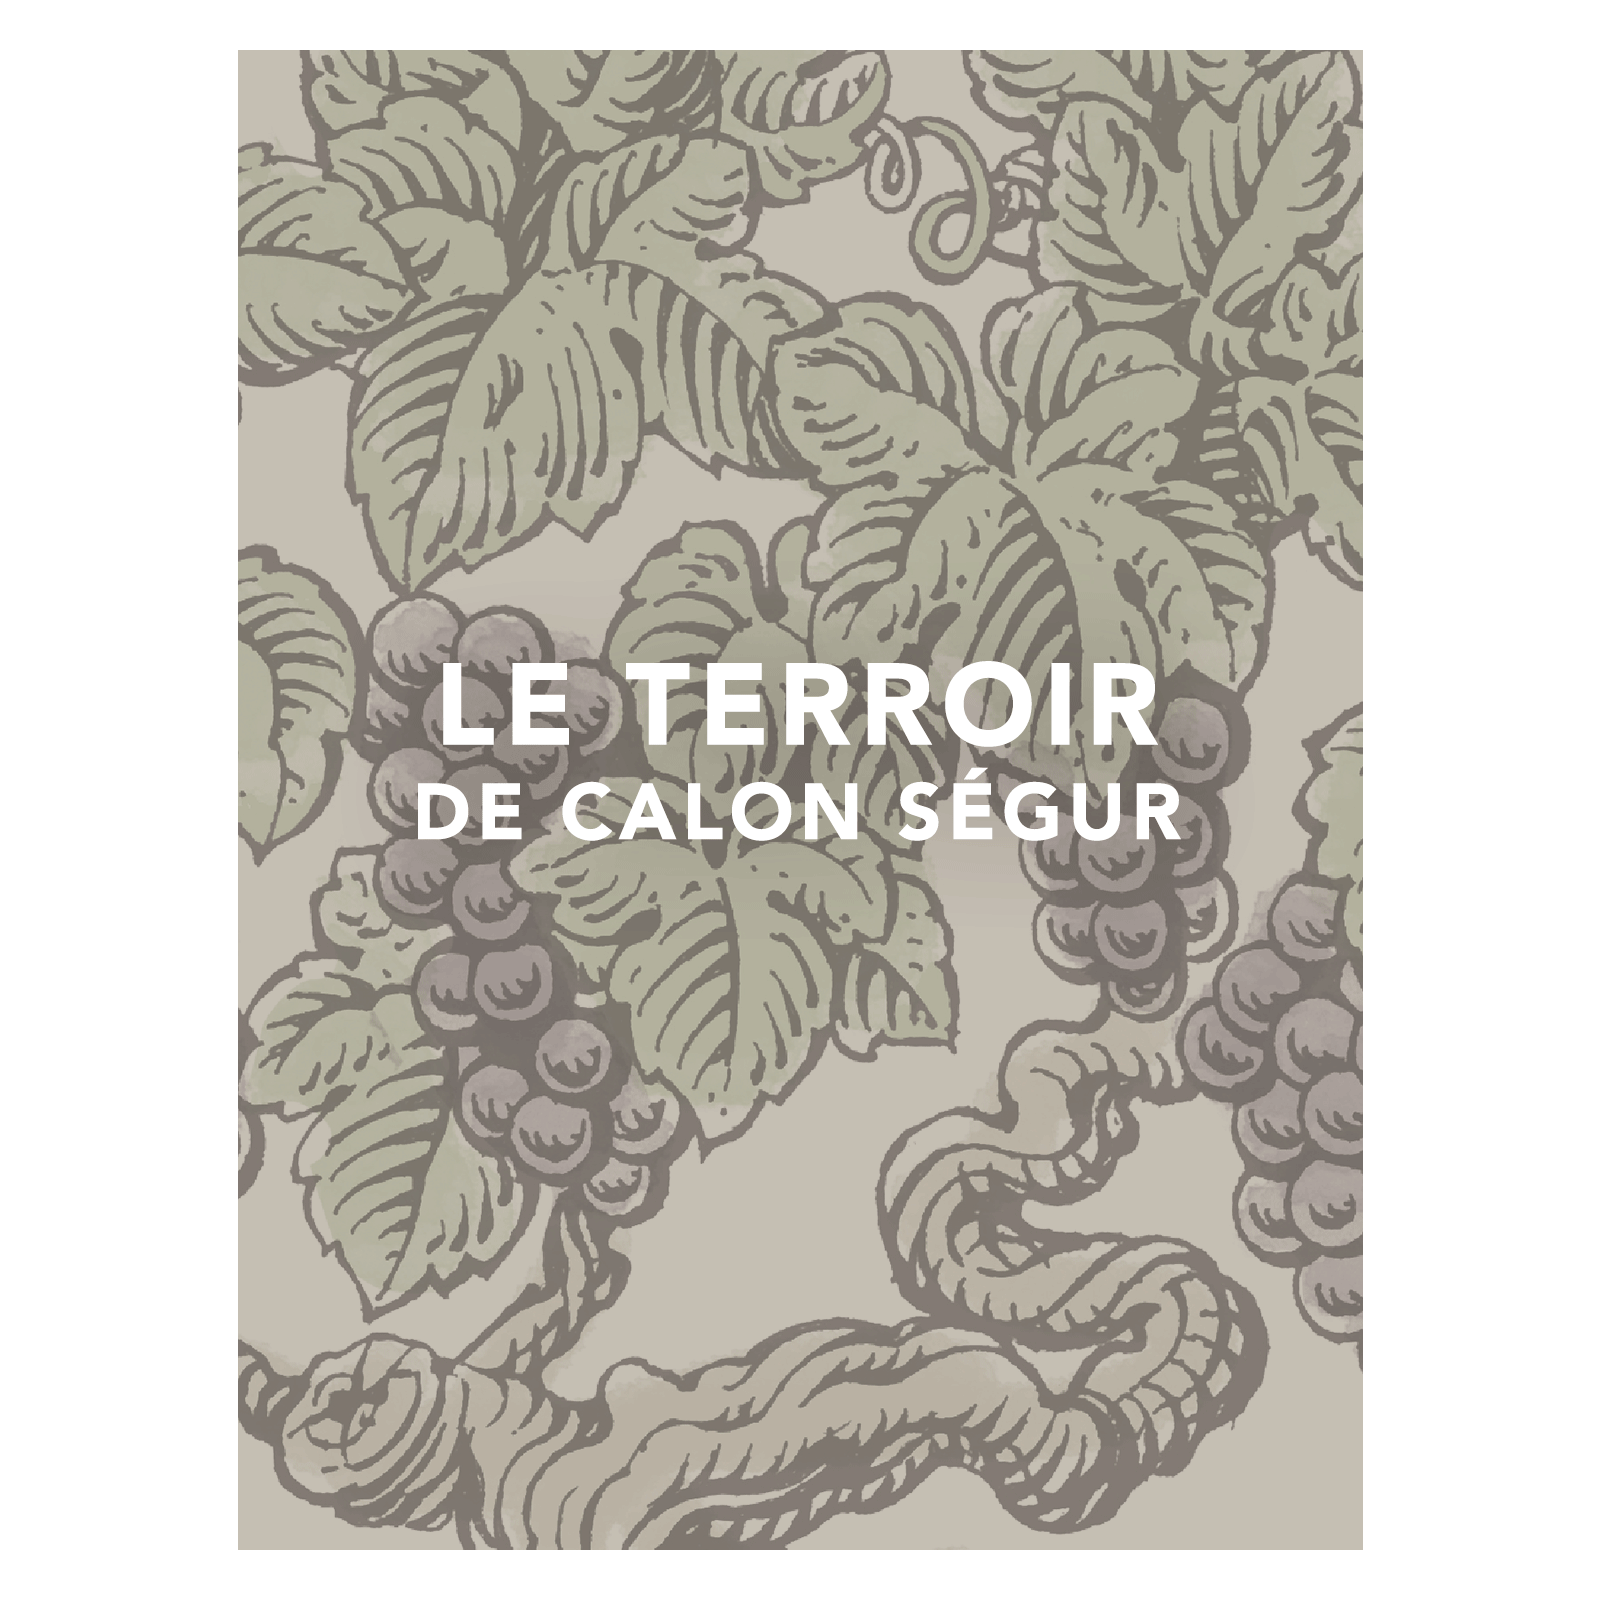 La coupe du terroir